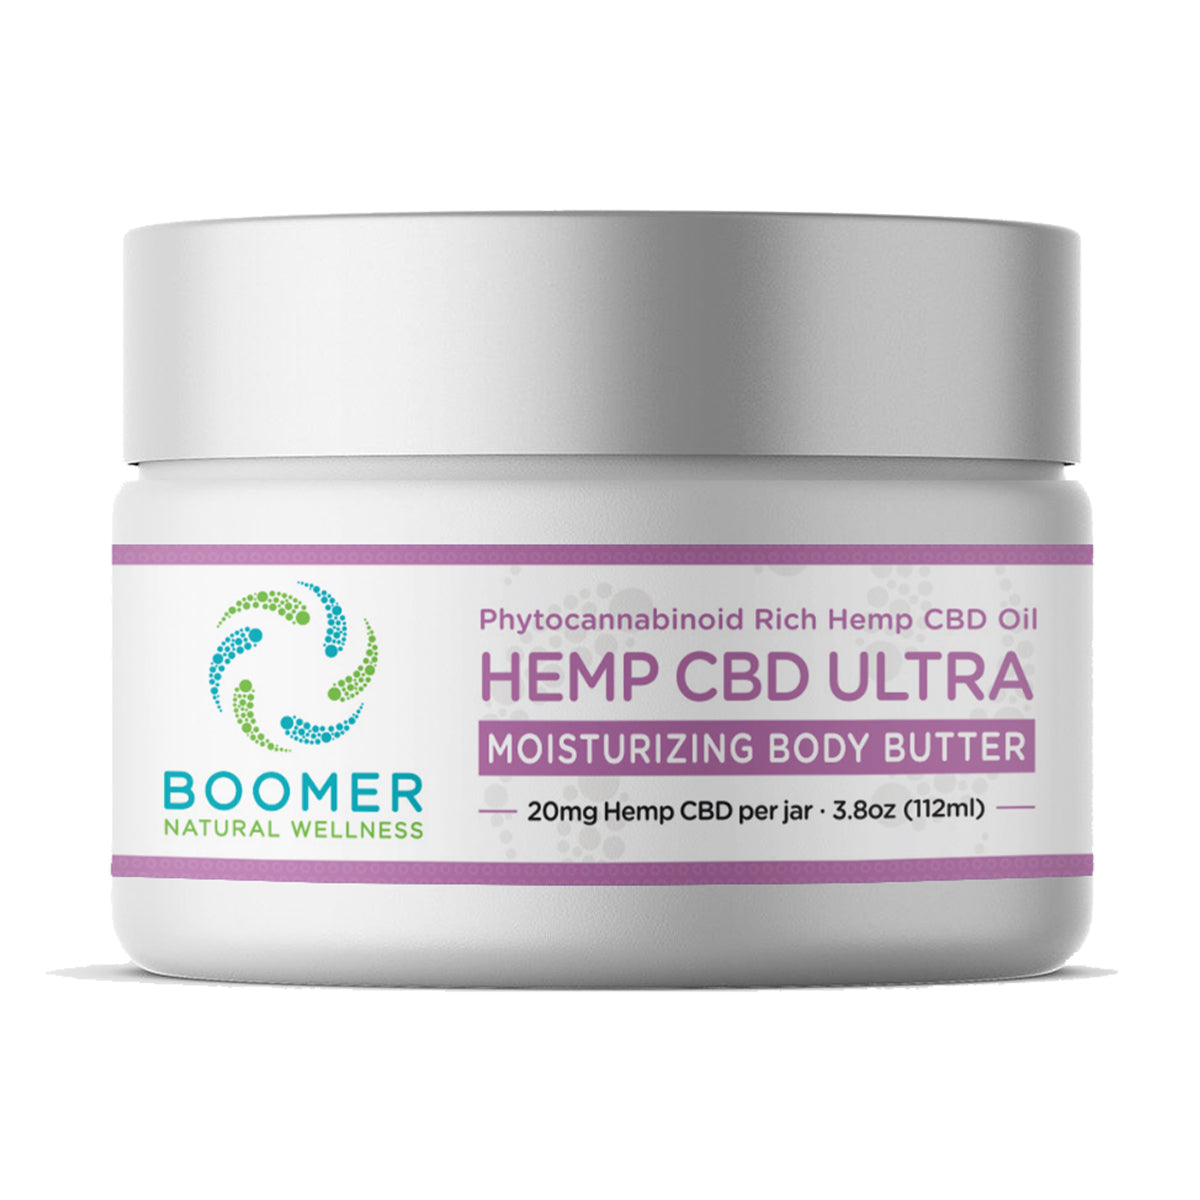 Hemp CBD Ultra Moisturizing Body Butter